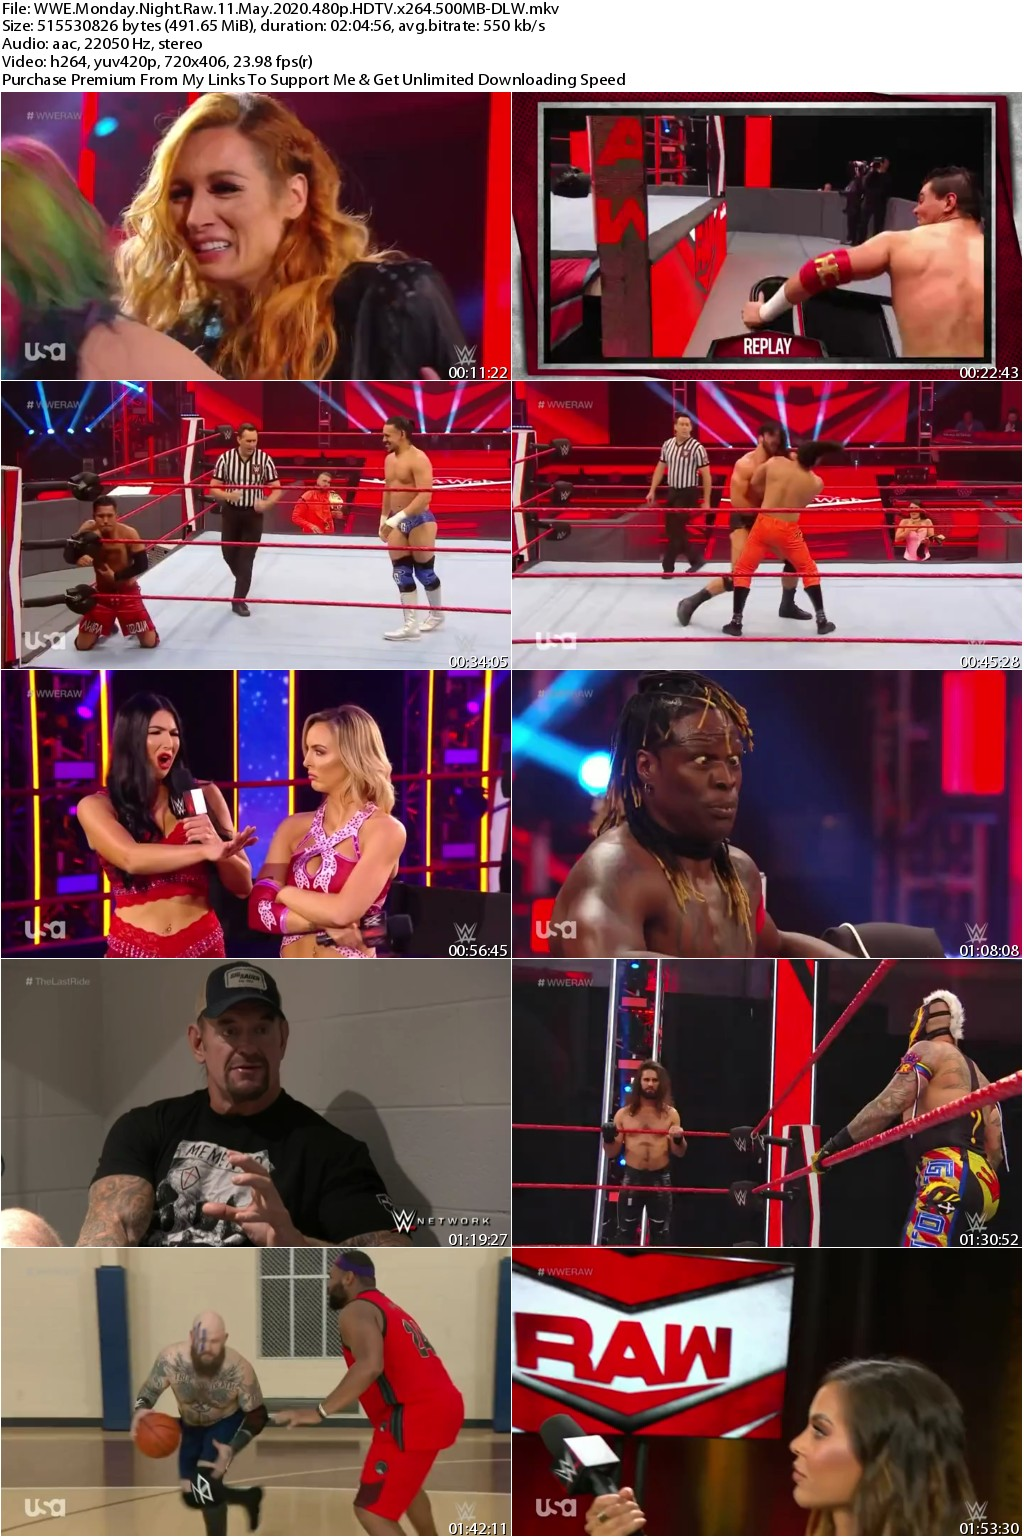 WWE Monday Night Raw 11 May 2020 480p HDTV x264 500MB-DLW